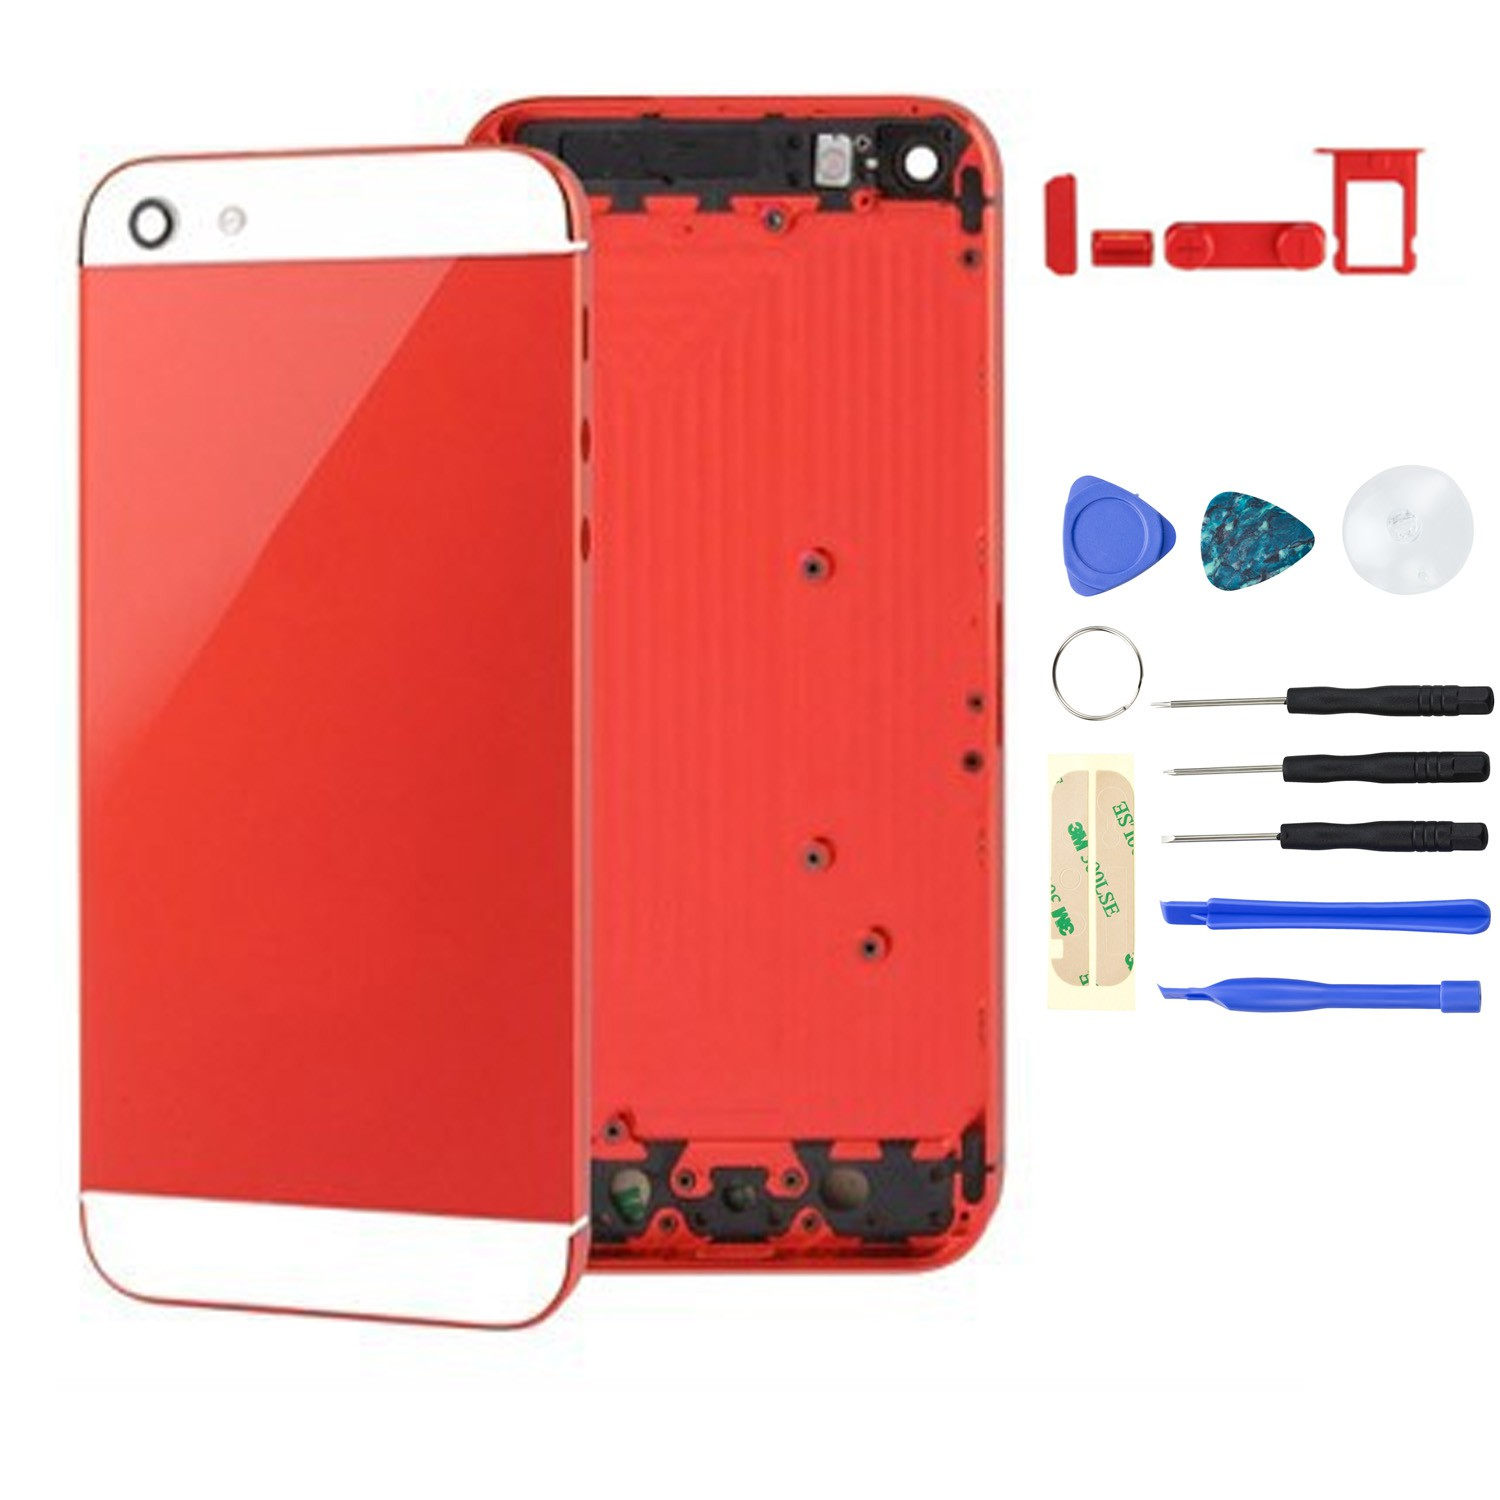 Yemota Pro Housingcover iPhone 5 - Rot